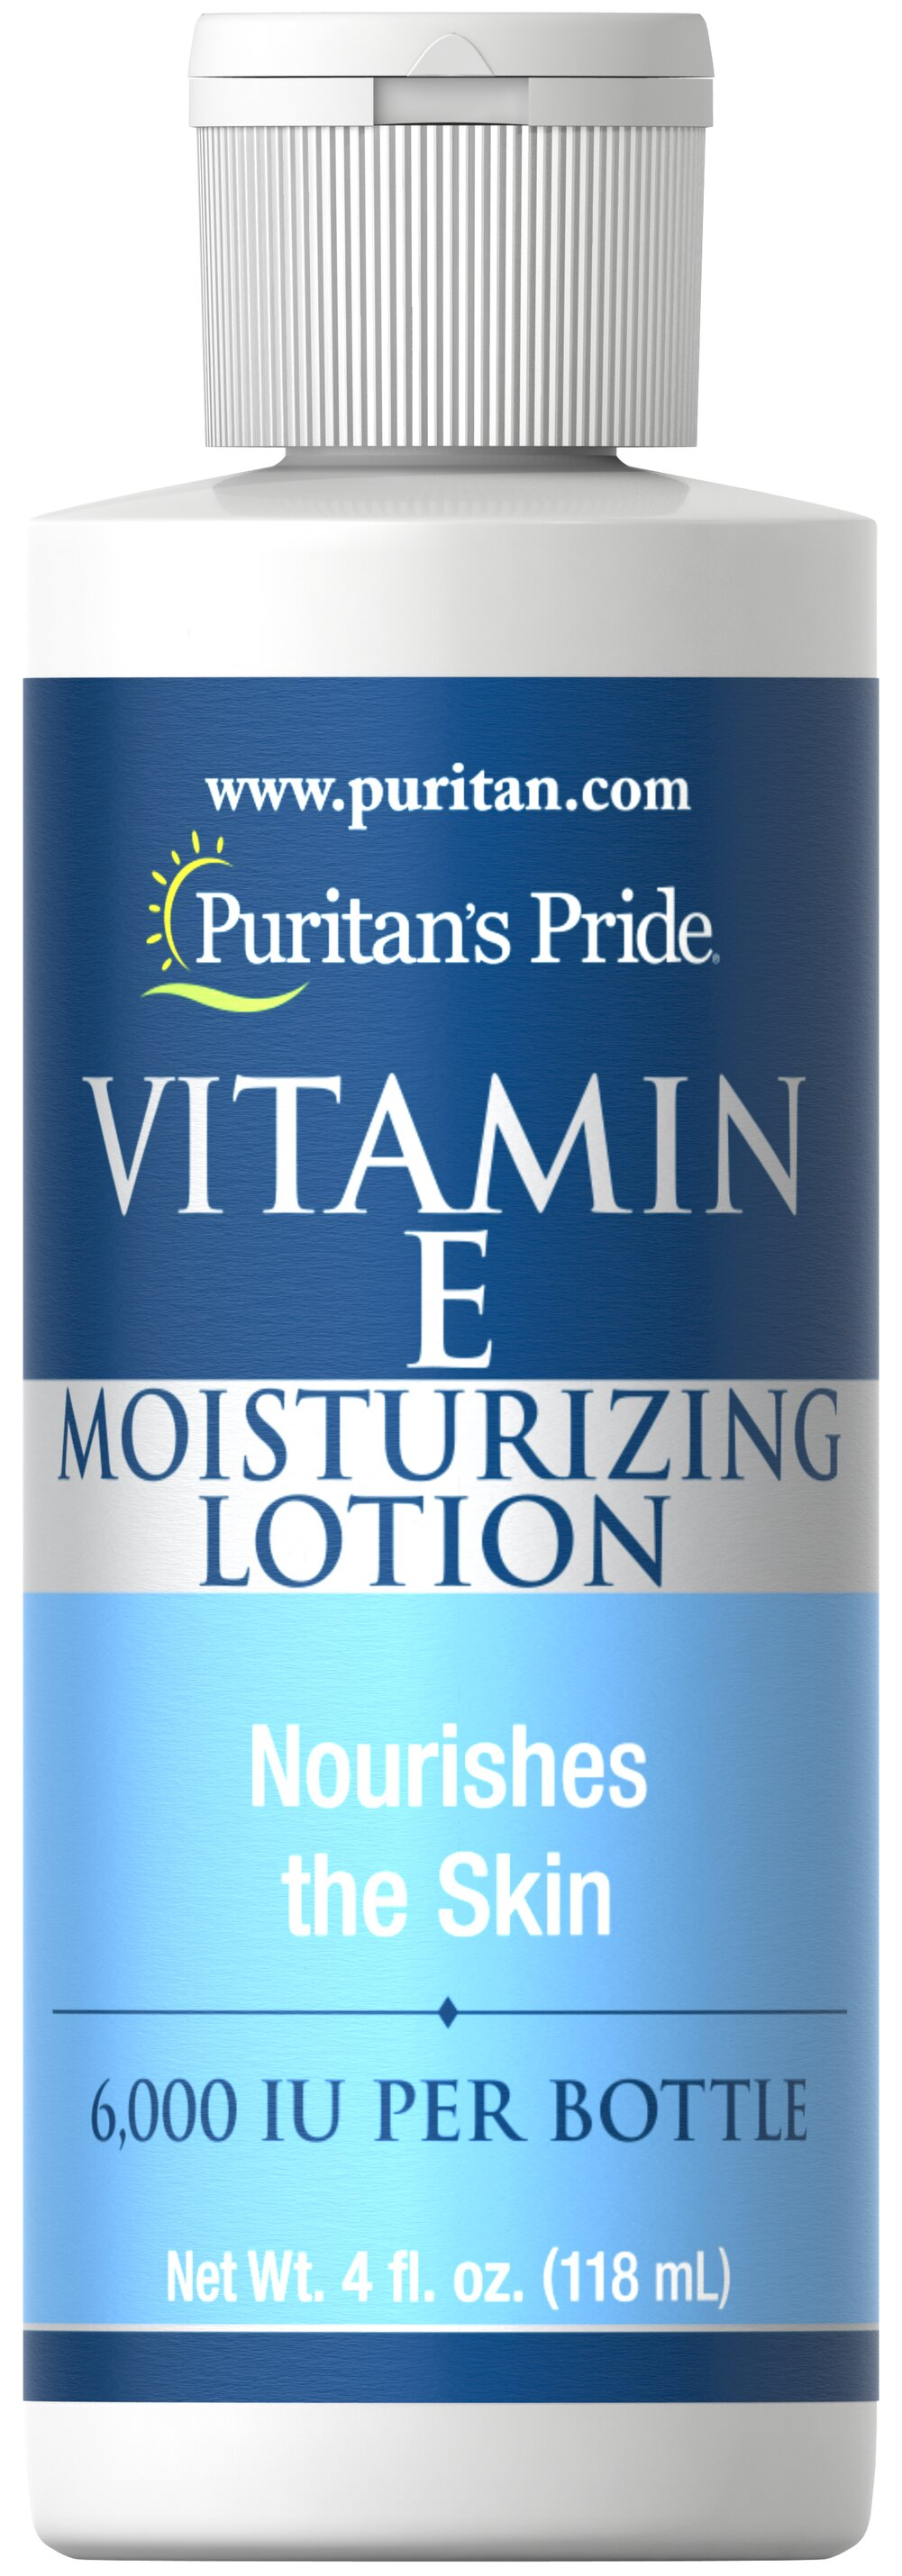 Vitamin E Moisturizing Lotion 6,000 IU Thumbnail Alternate Bottle View